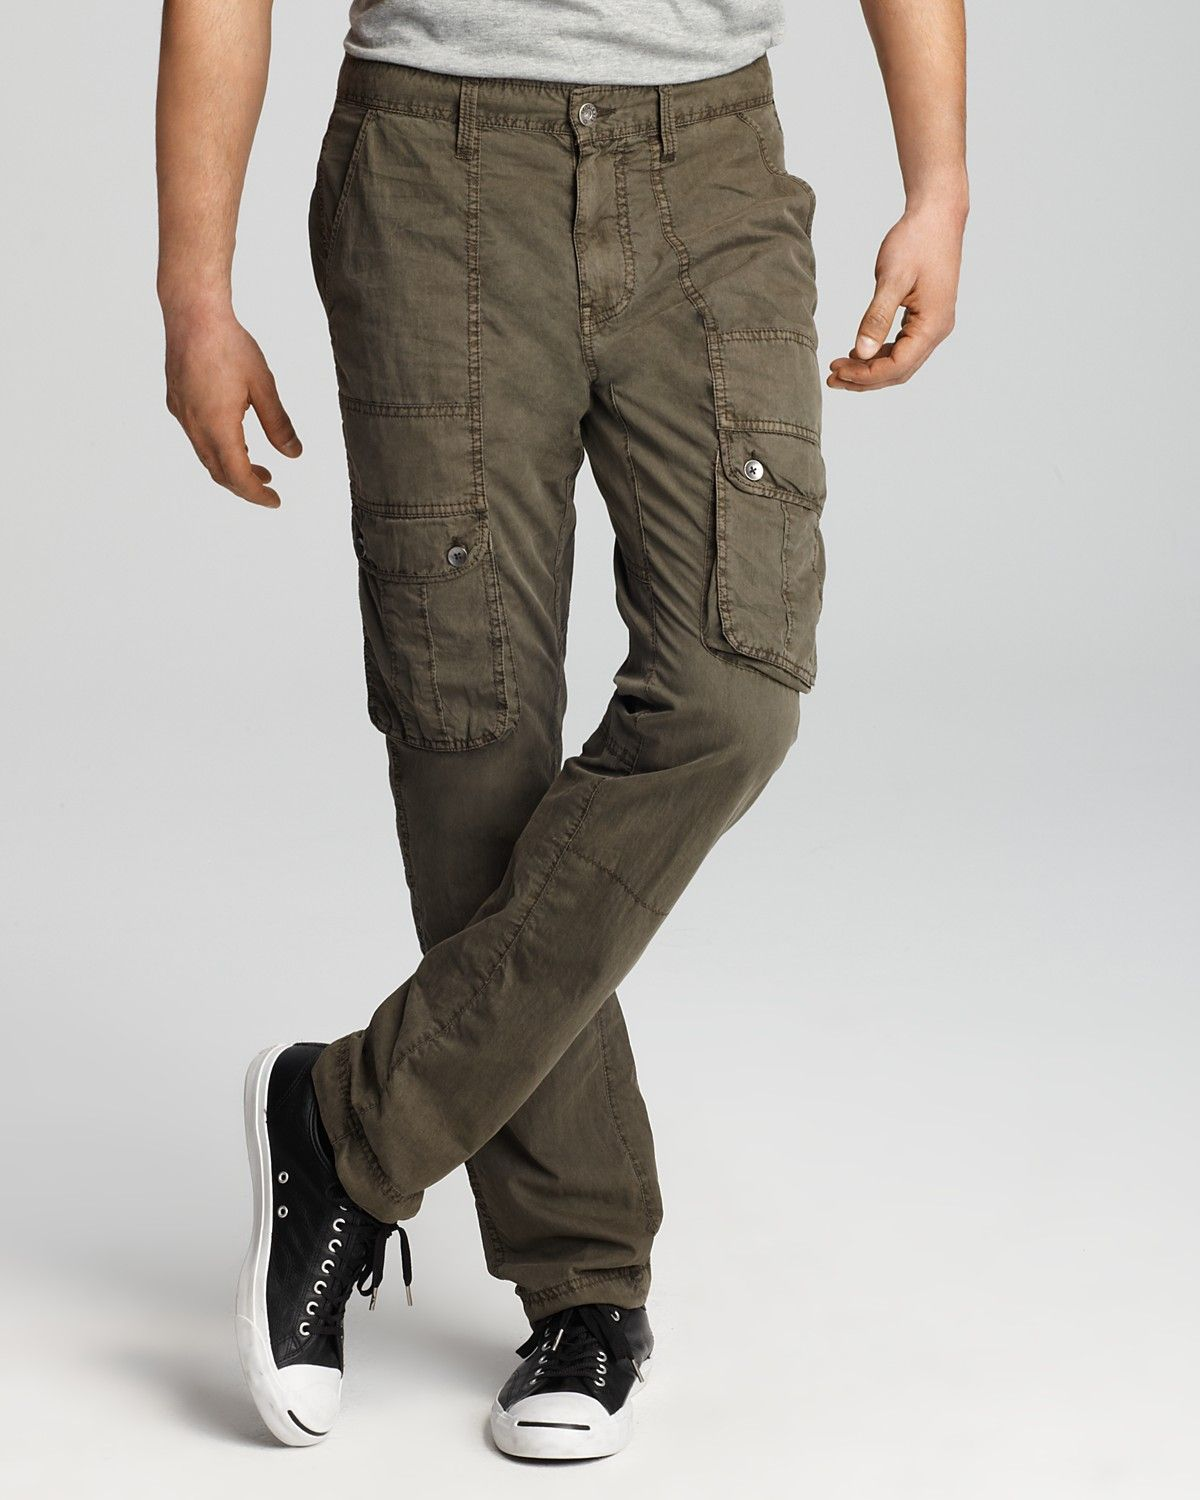 Slim Fit Cargo Pants Mens x0duc52x | cargo pants | Pinterest ...